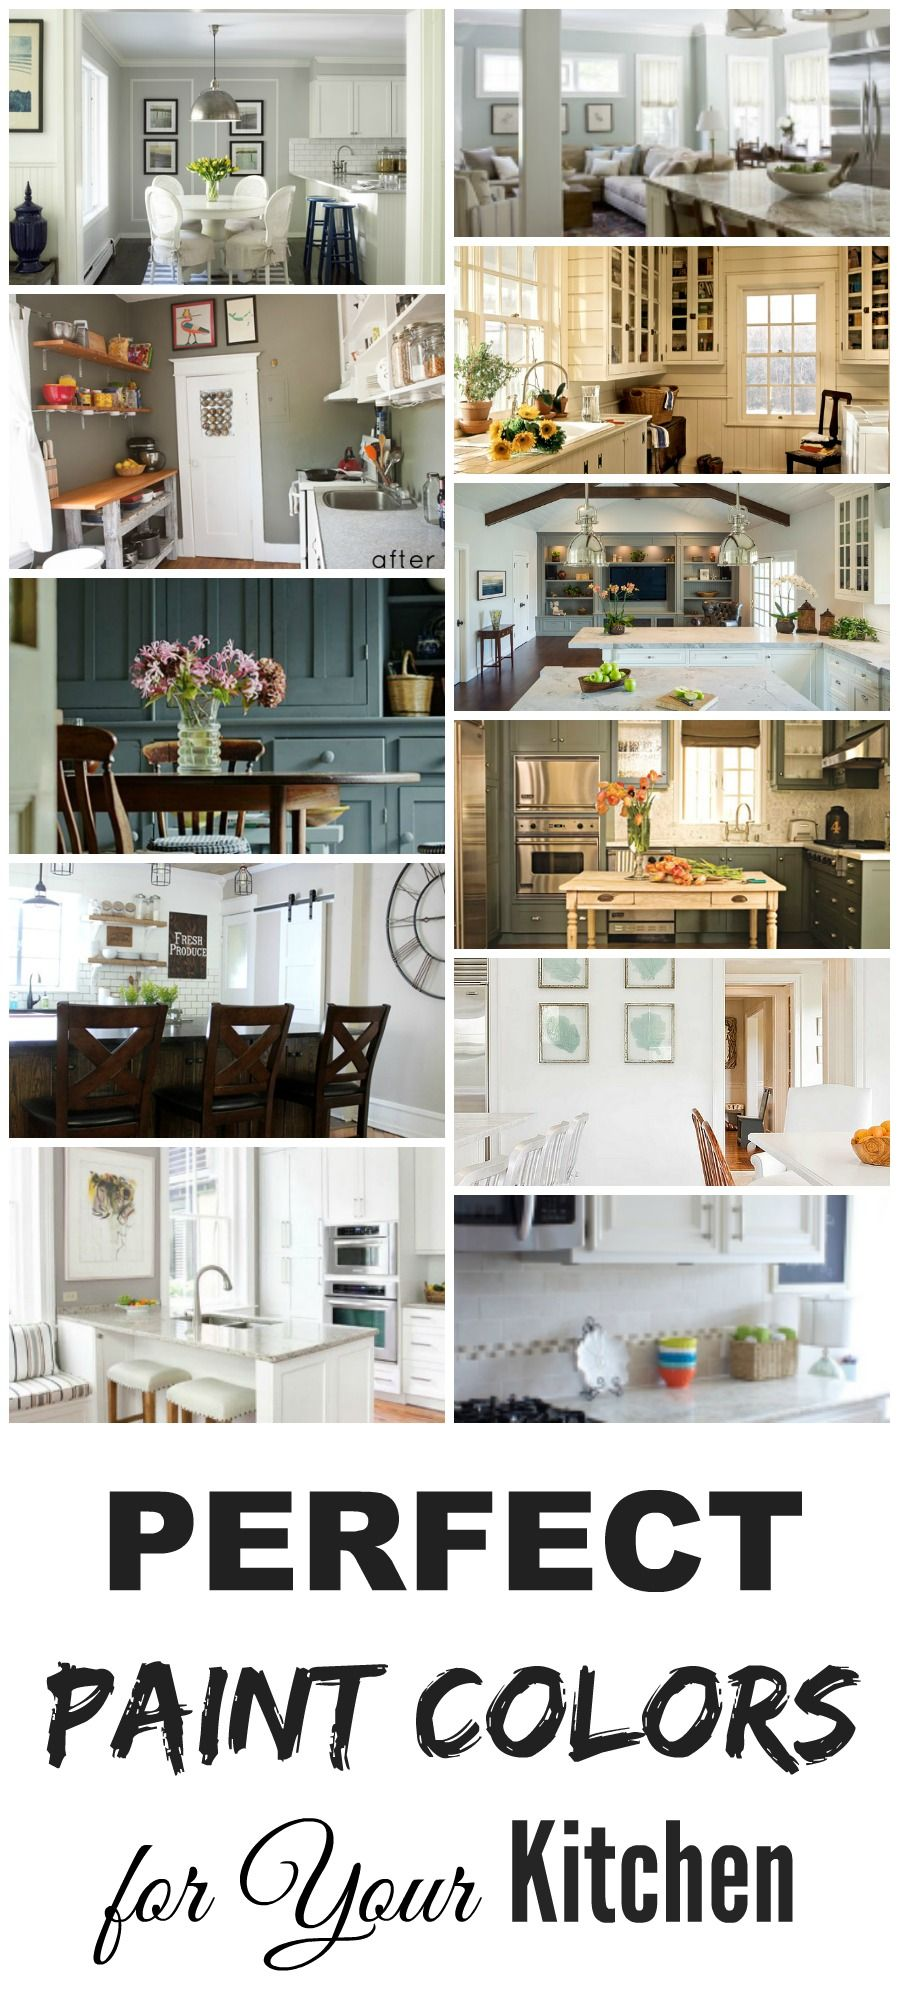 Are You Ready To Tackle The Job Of Painting Kitchen Cabinets? Learning From  Others Mistakes